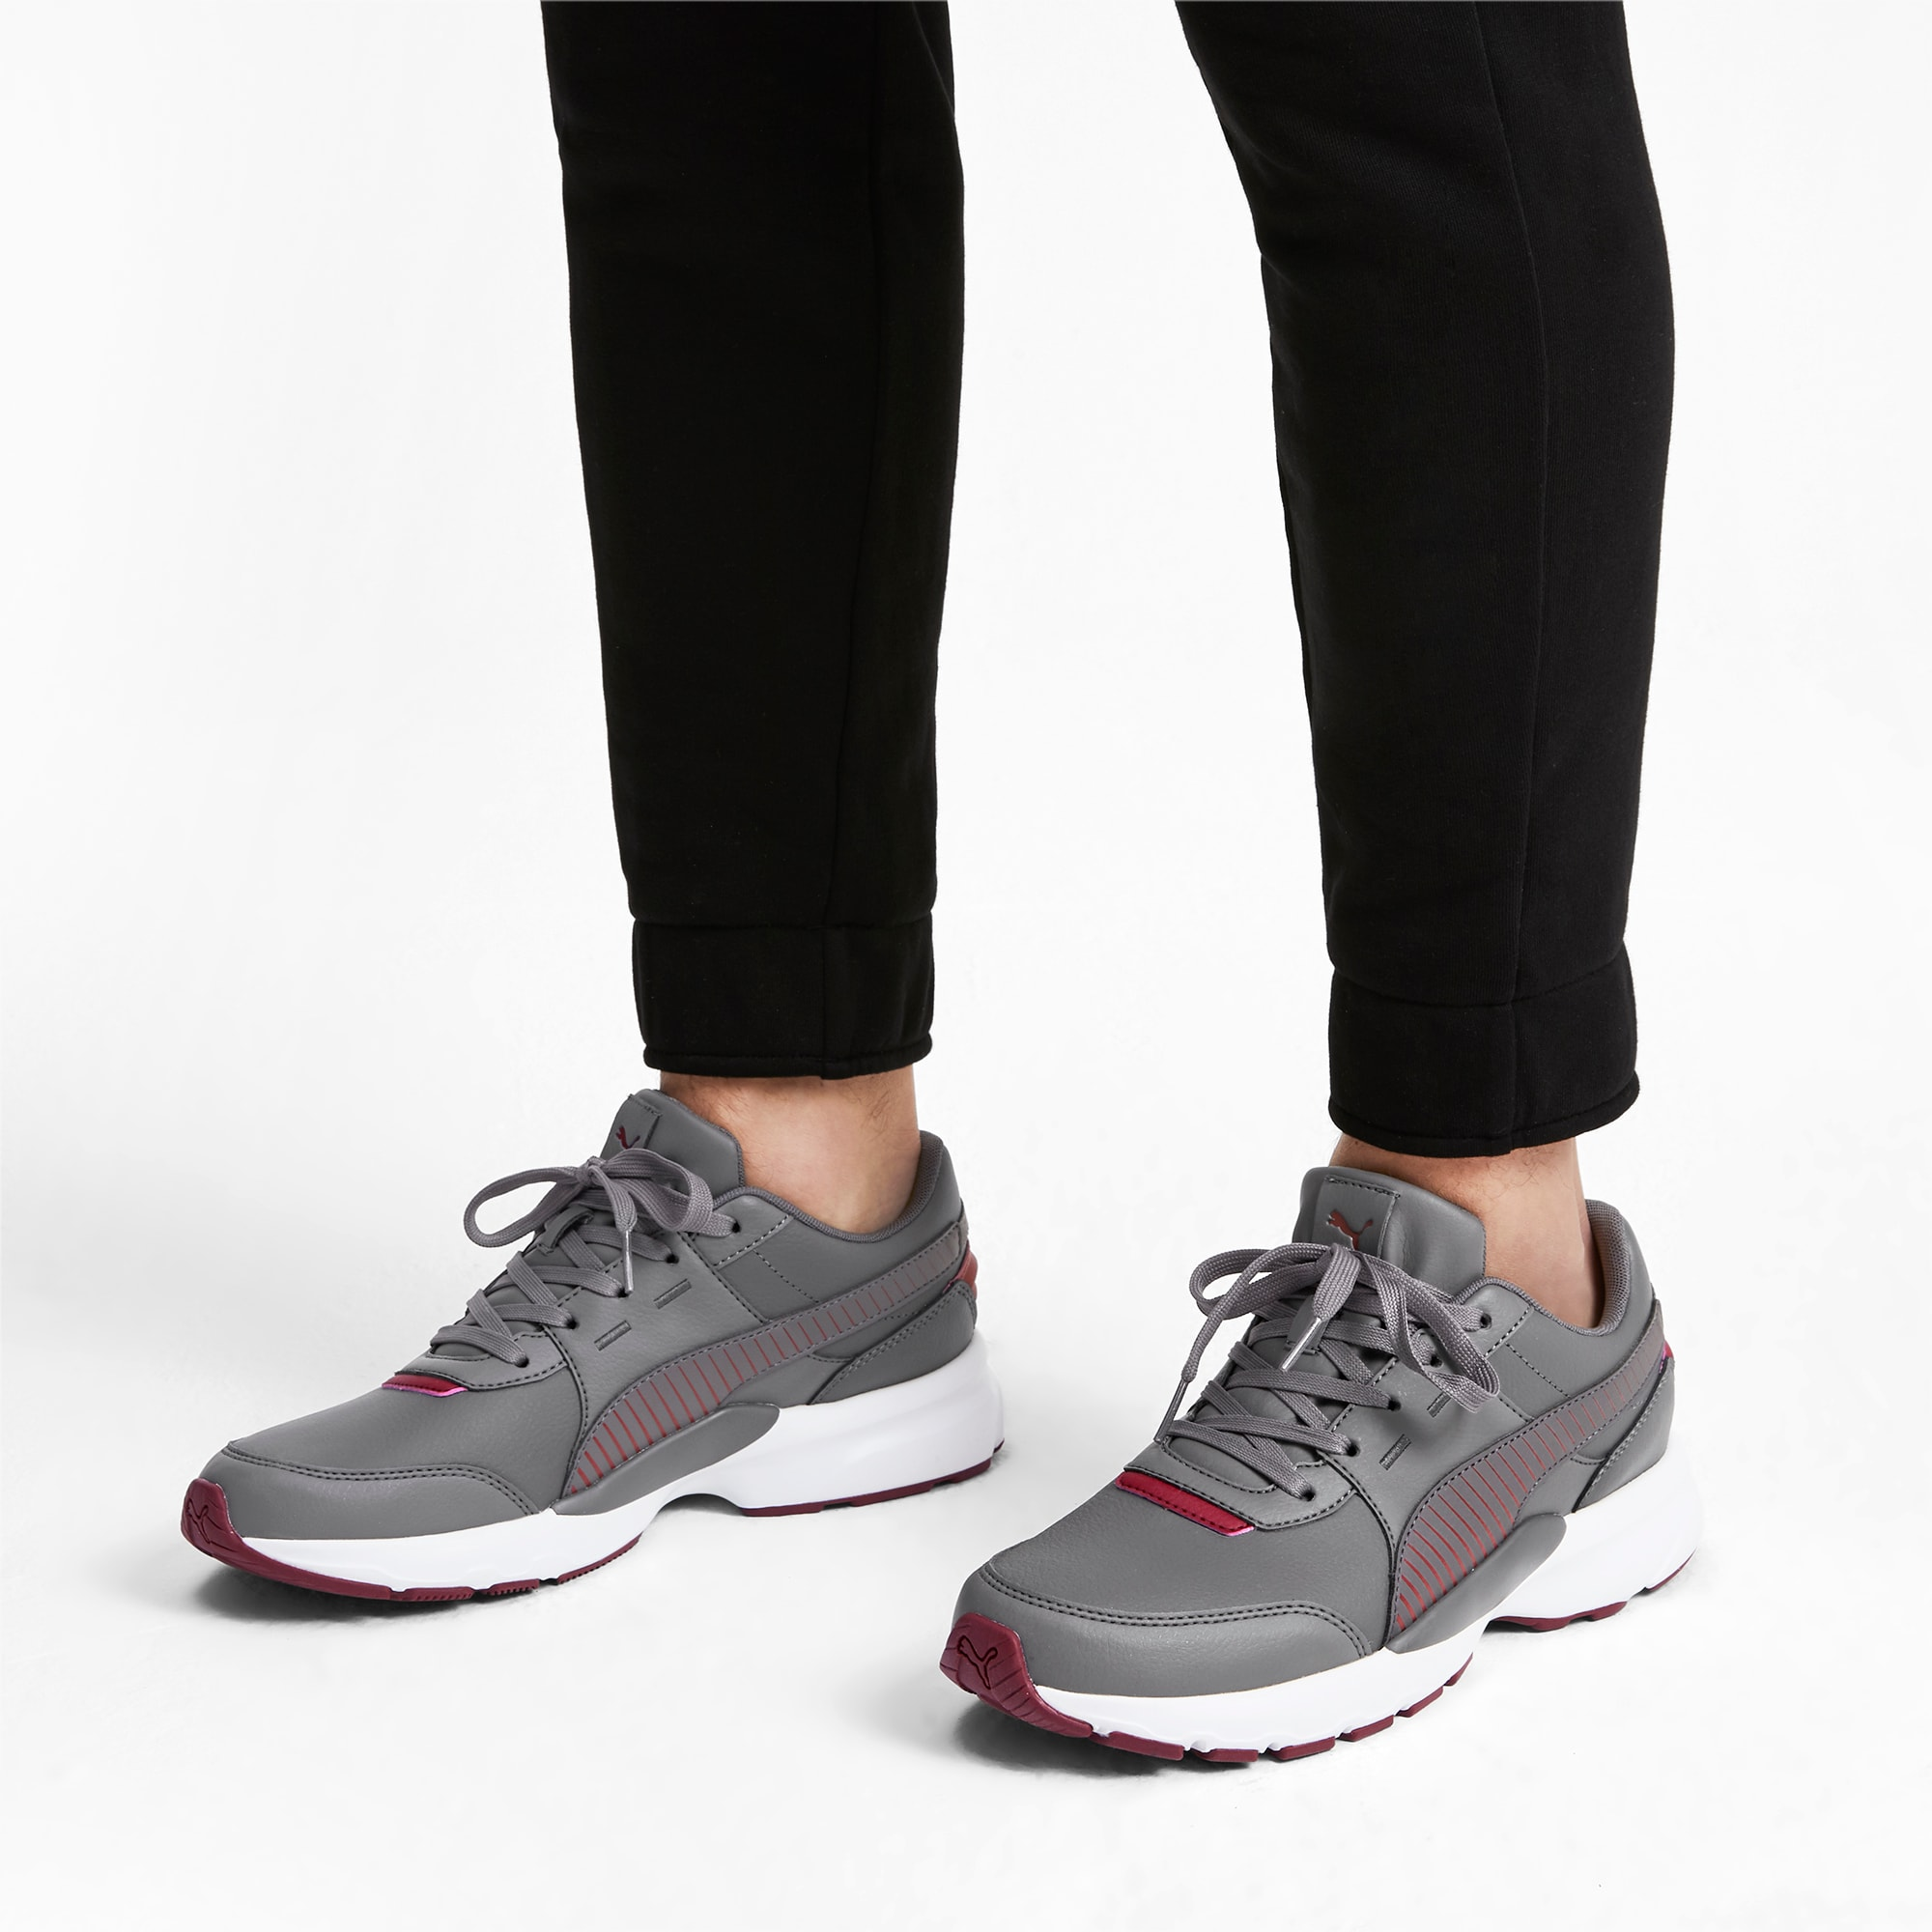 Future Runner L Shoes